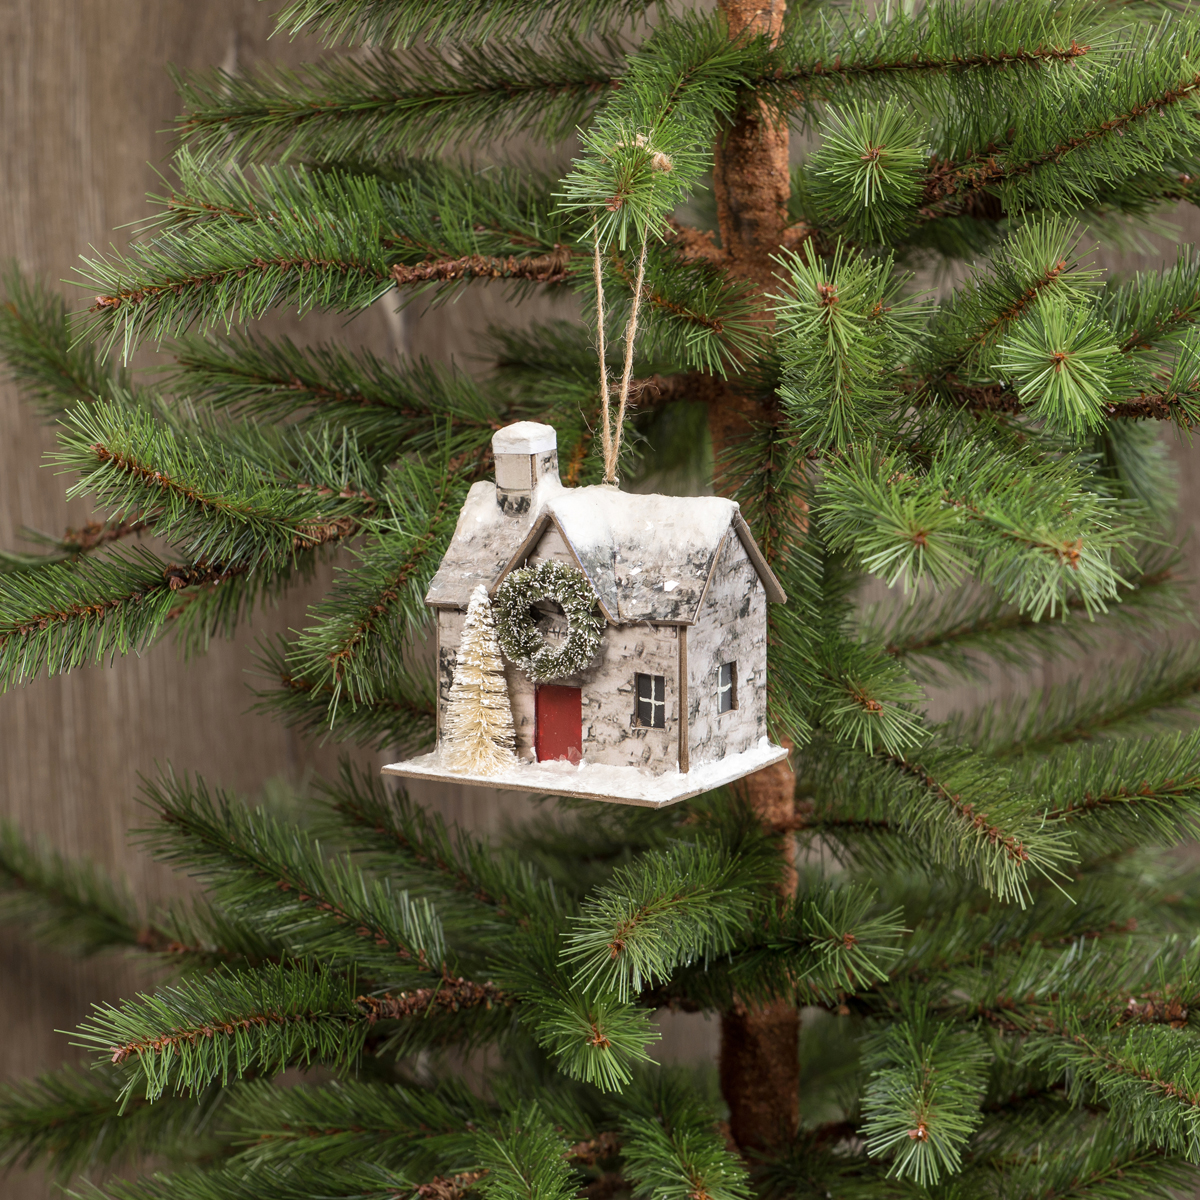 HOUSE WITH WREATH ORNAMENT